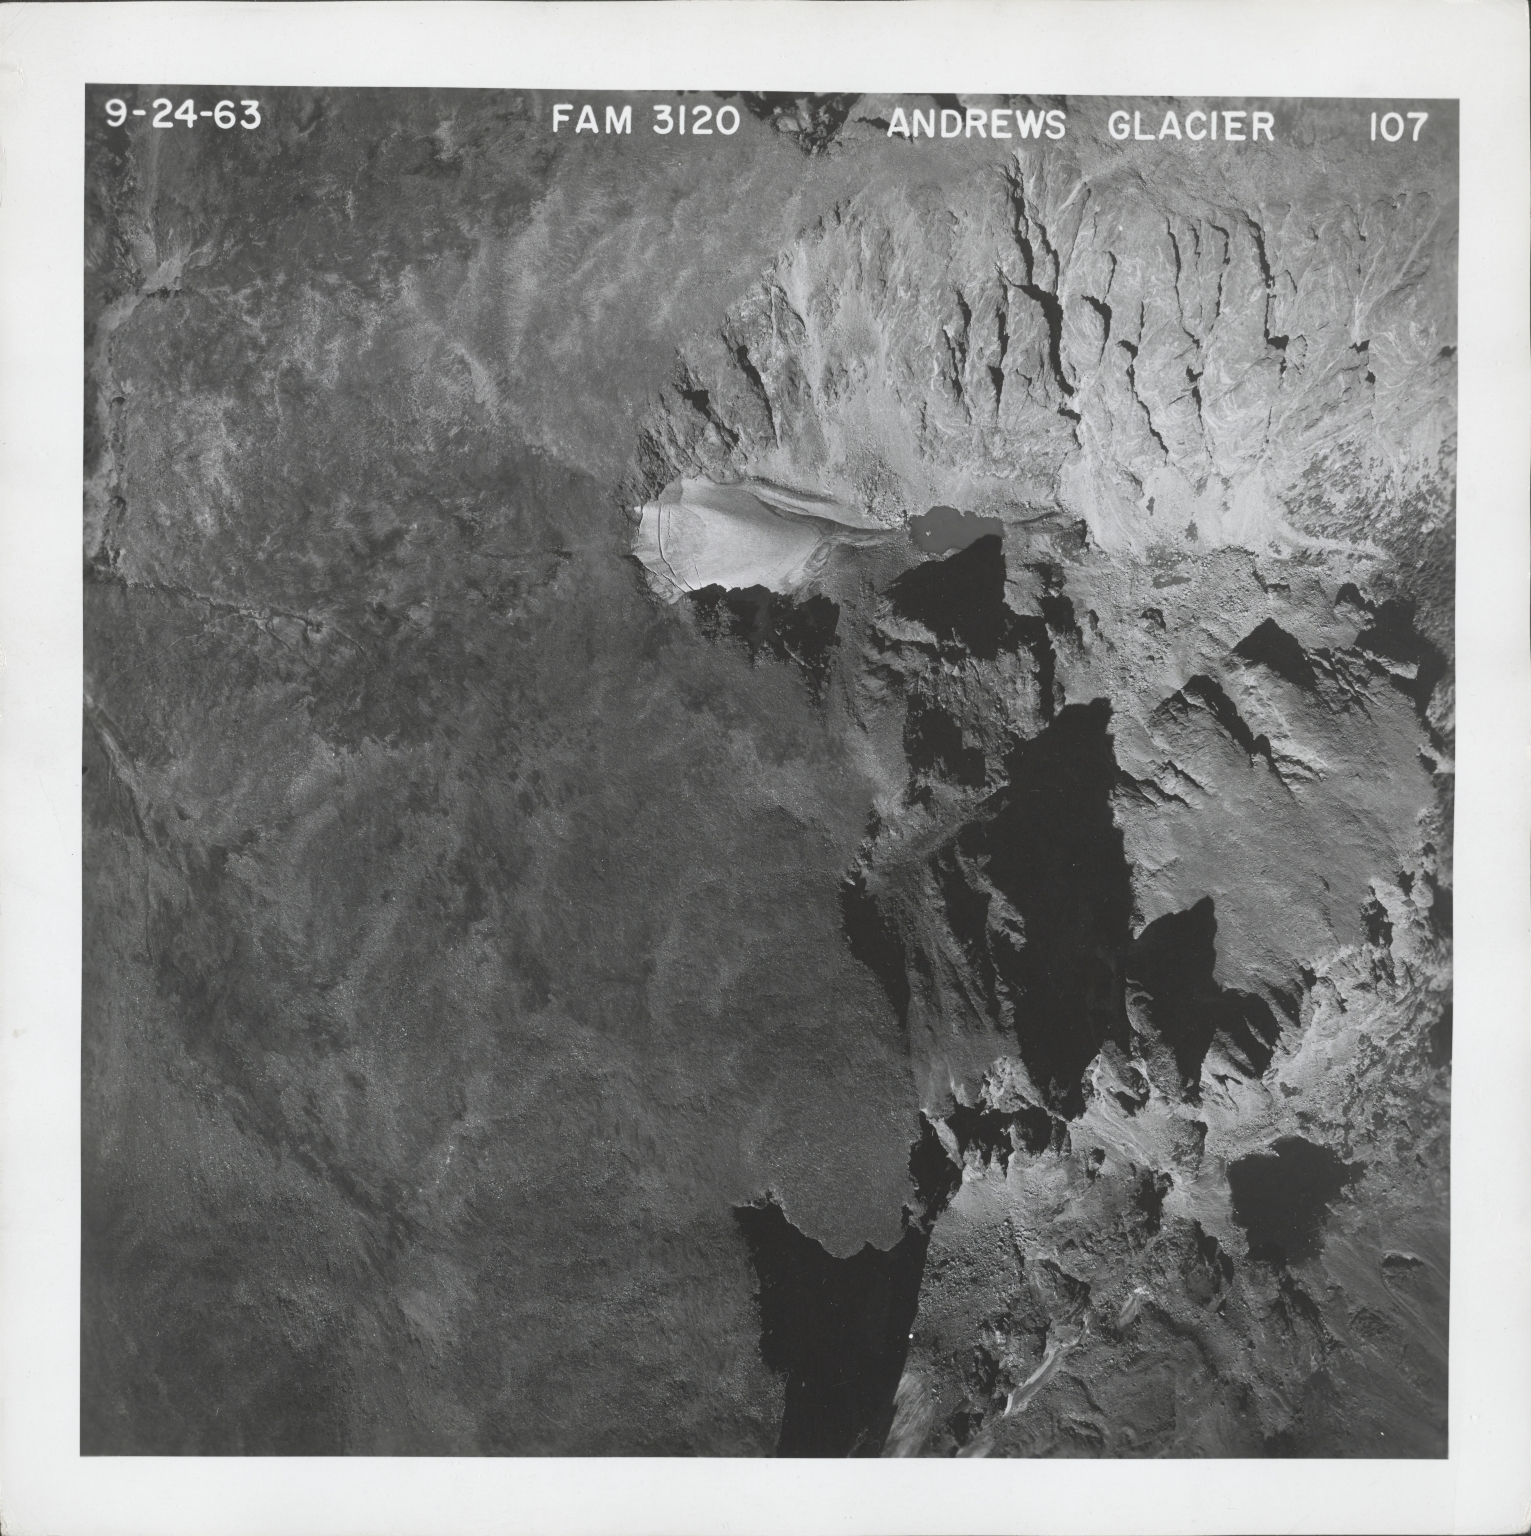 Andrews Glacier, aerial photograph FAM 3120 107, Colorado